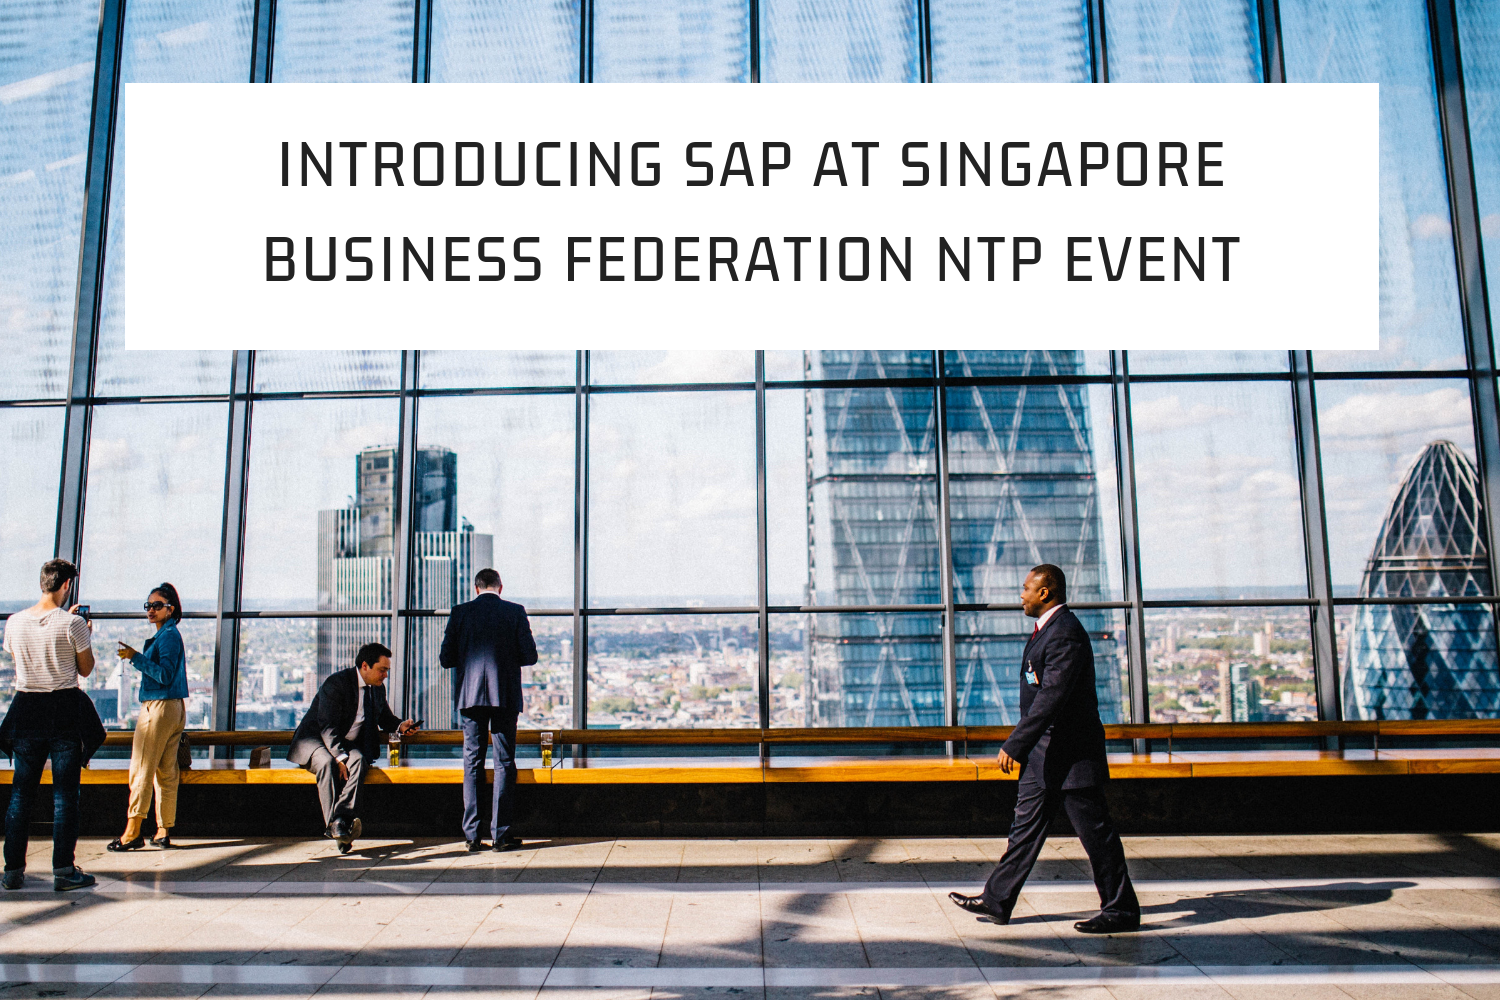 SAP-NTP at Singapore Business Federation